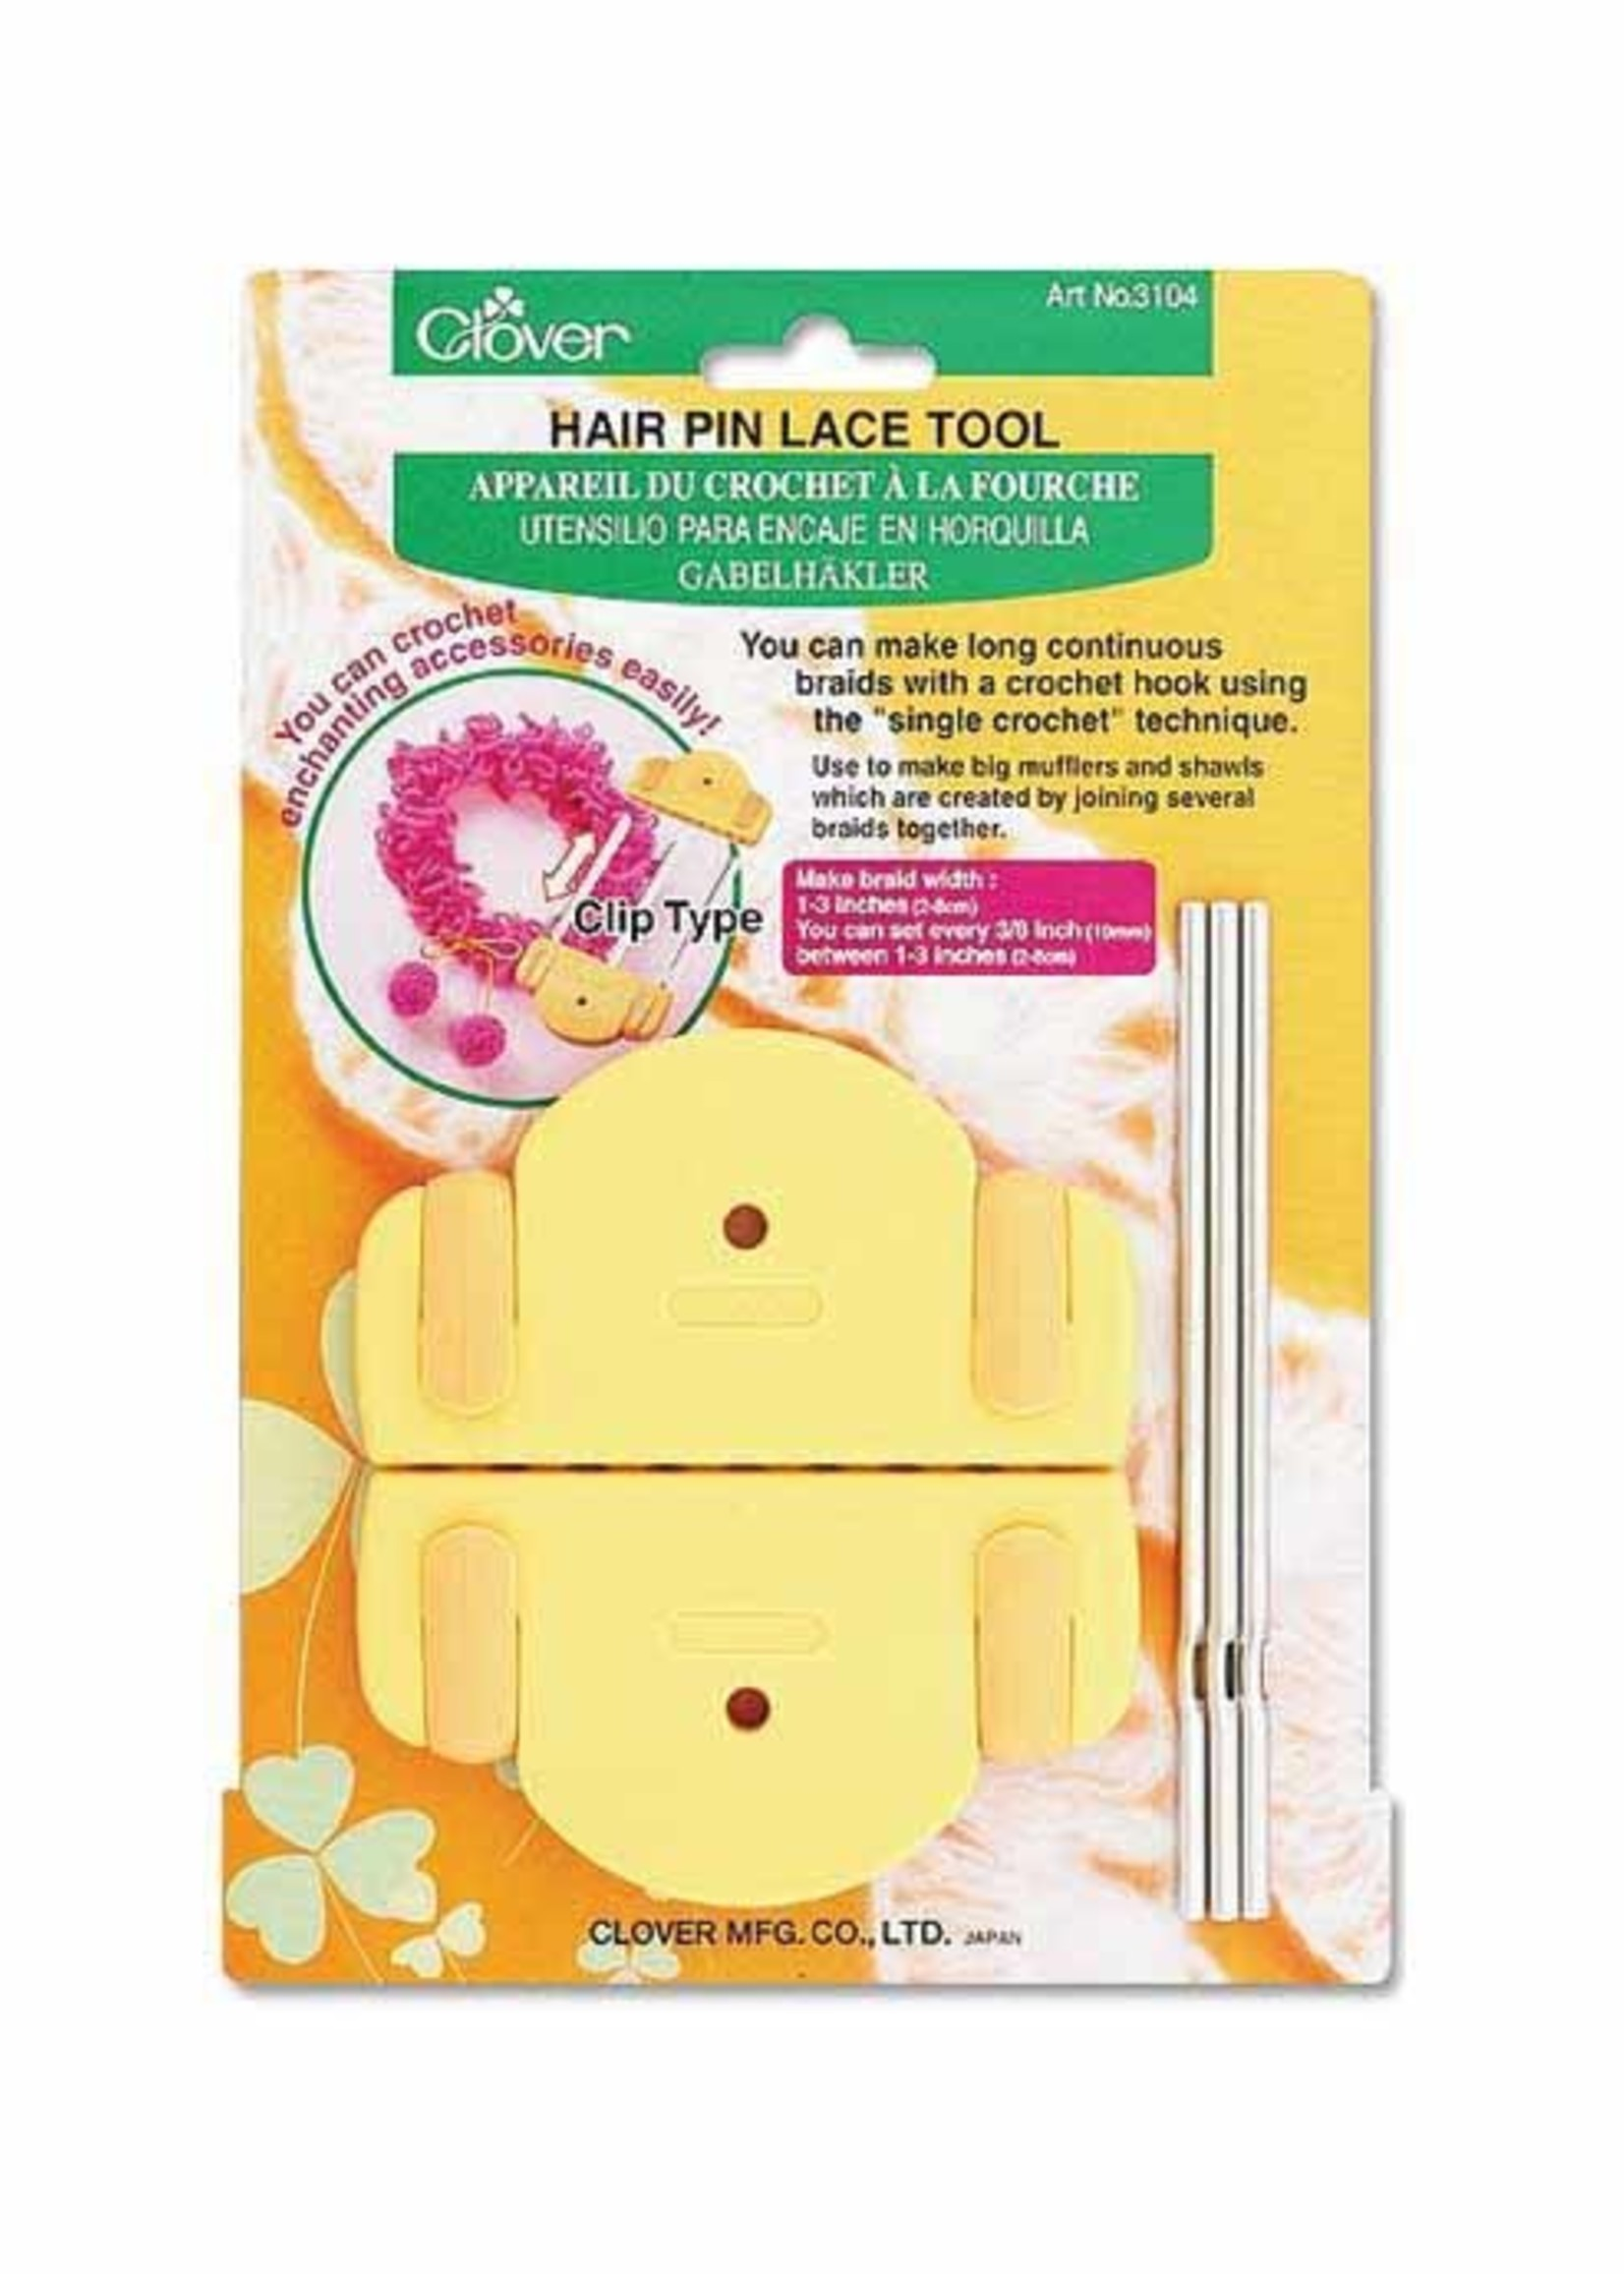 Clover Clover Hair Pin Lace Tool